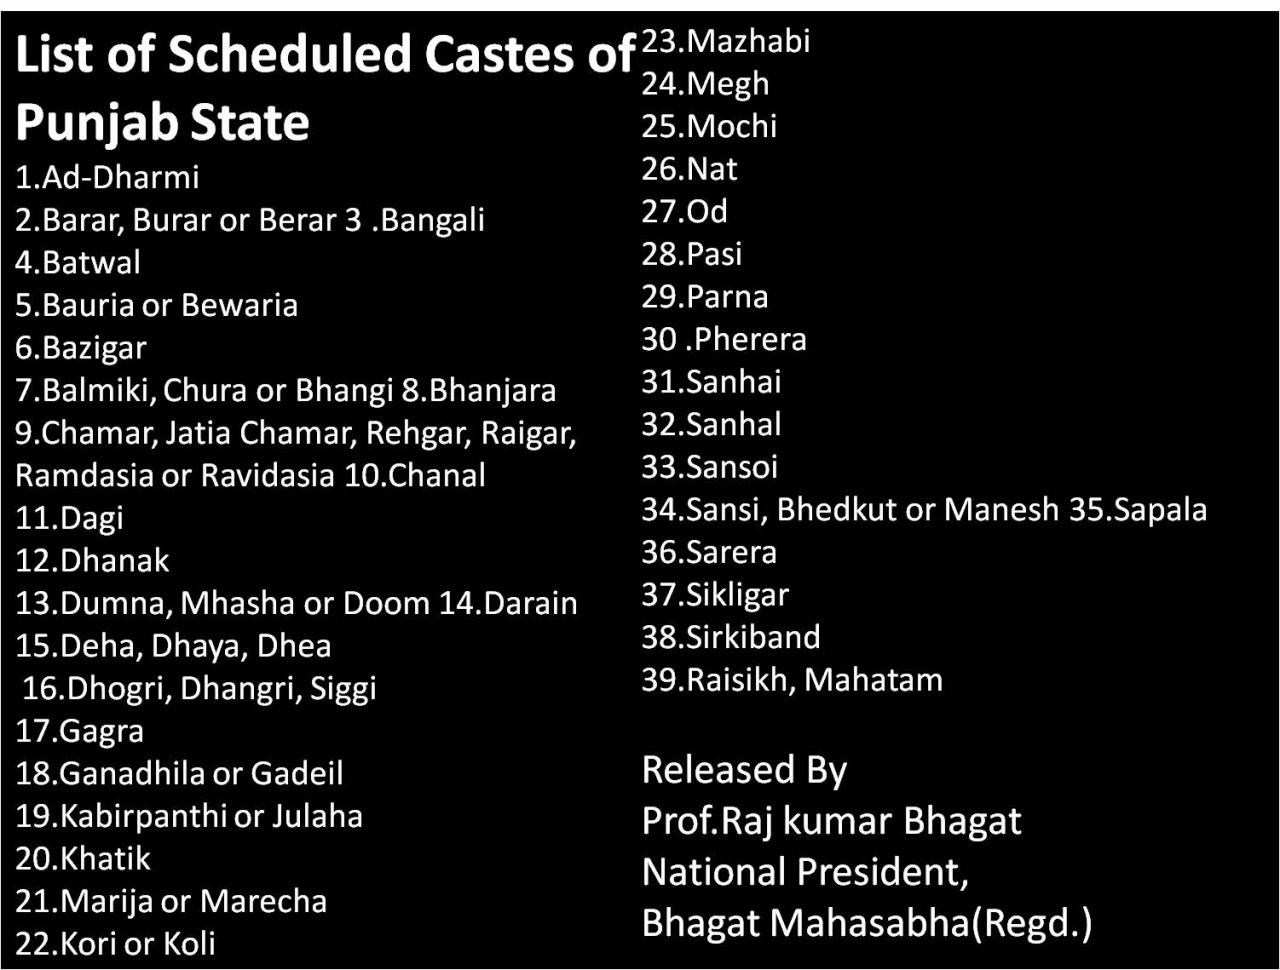 BHAGAT network: Scheduled Castes Lists of Punjab,Haryana